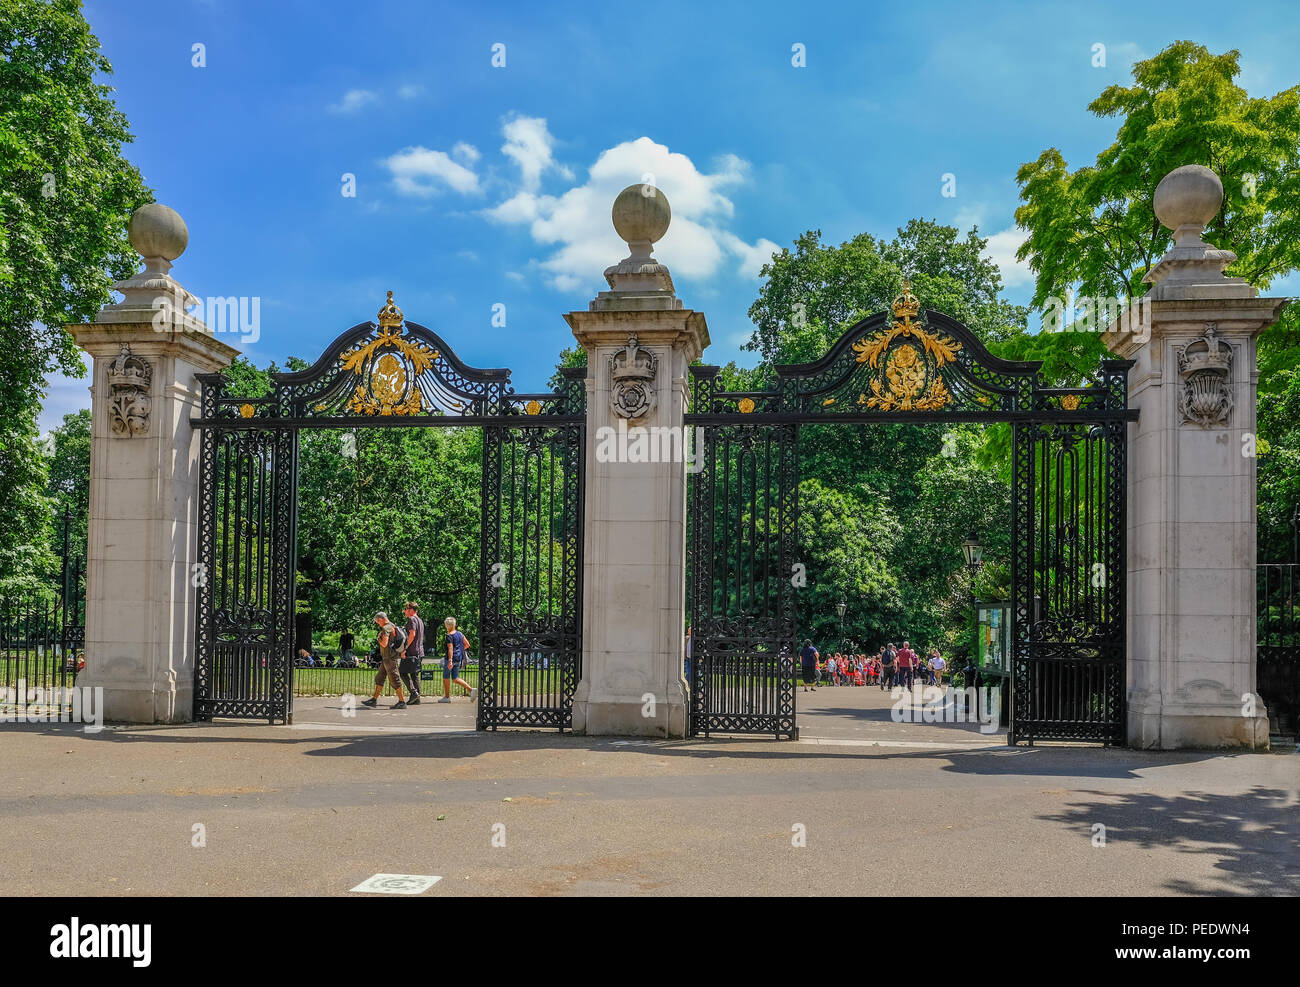 Mall, London, Uk - June 8, 2018:  View of the magnificent Malborough Gates on the Mall in central London, entrance to the park. - Stock Image